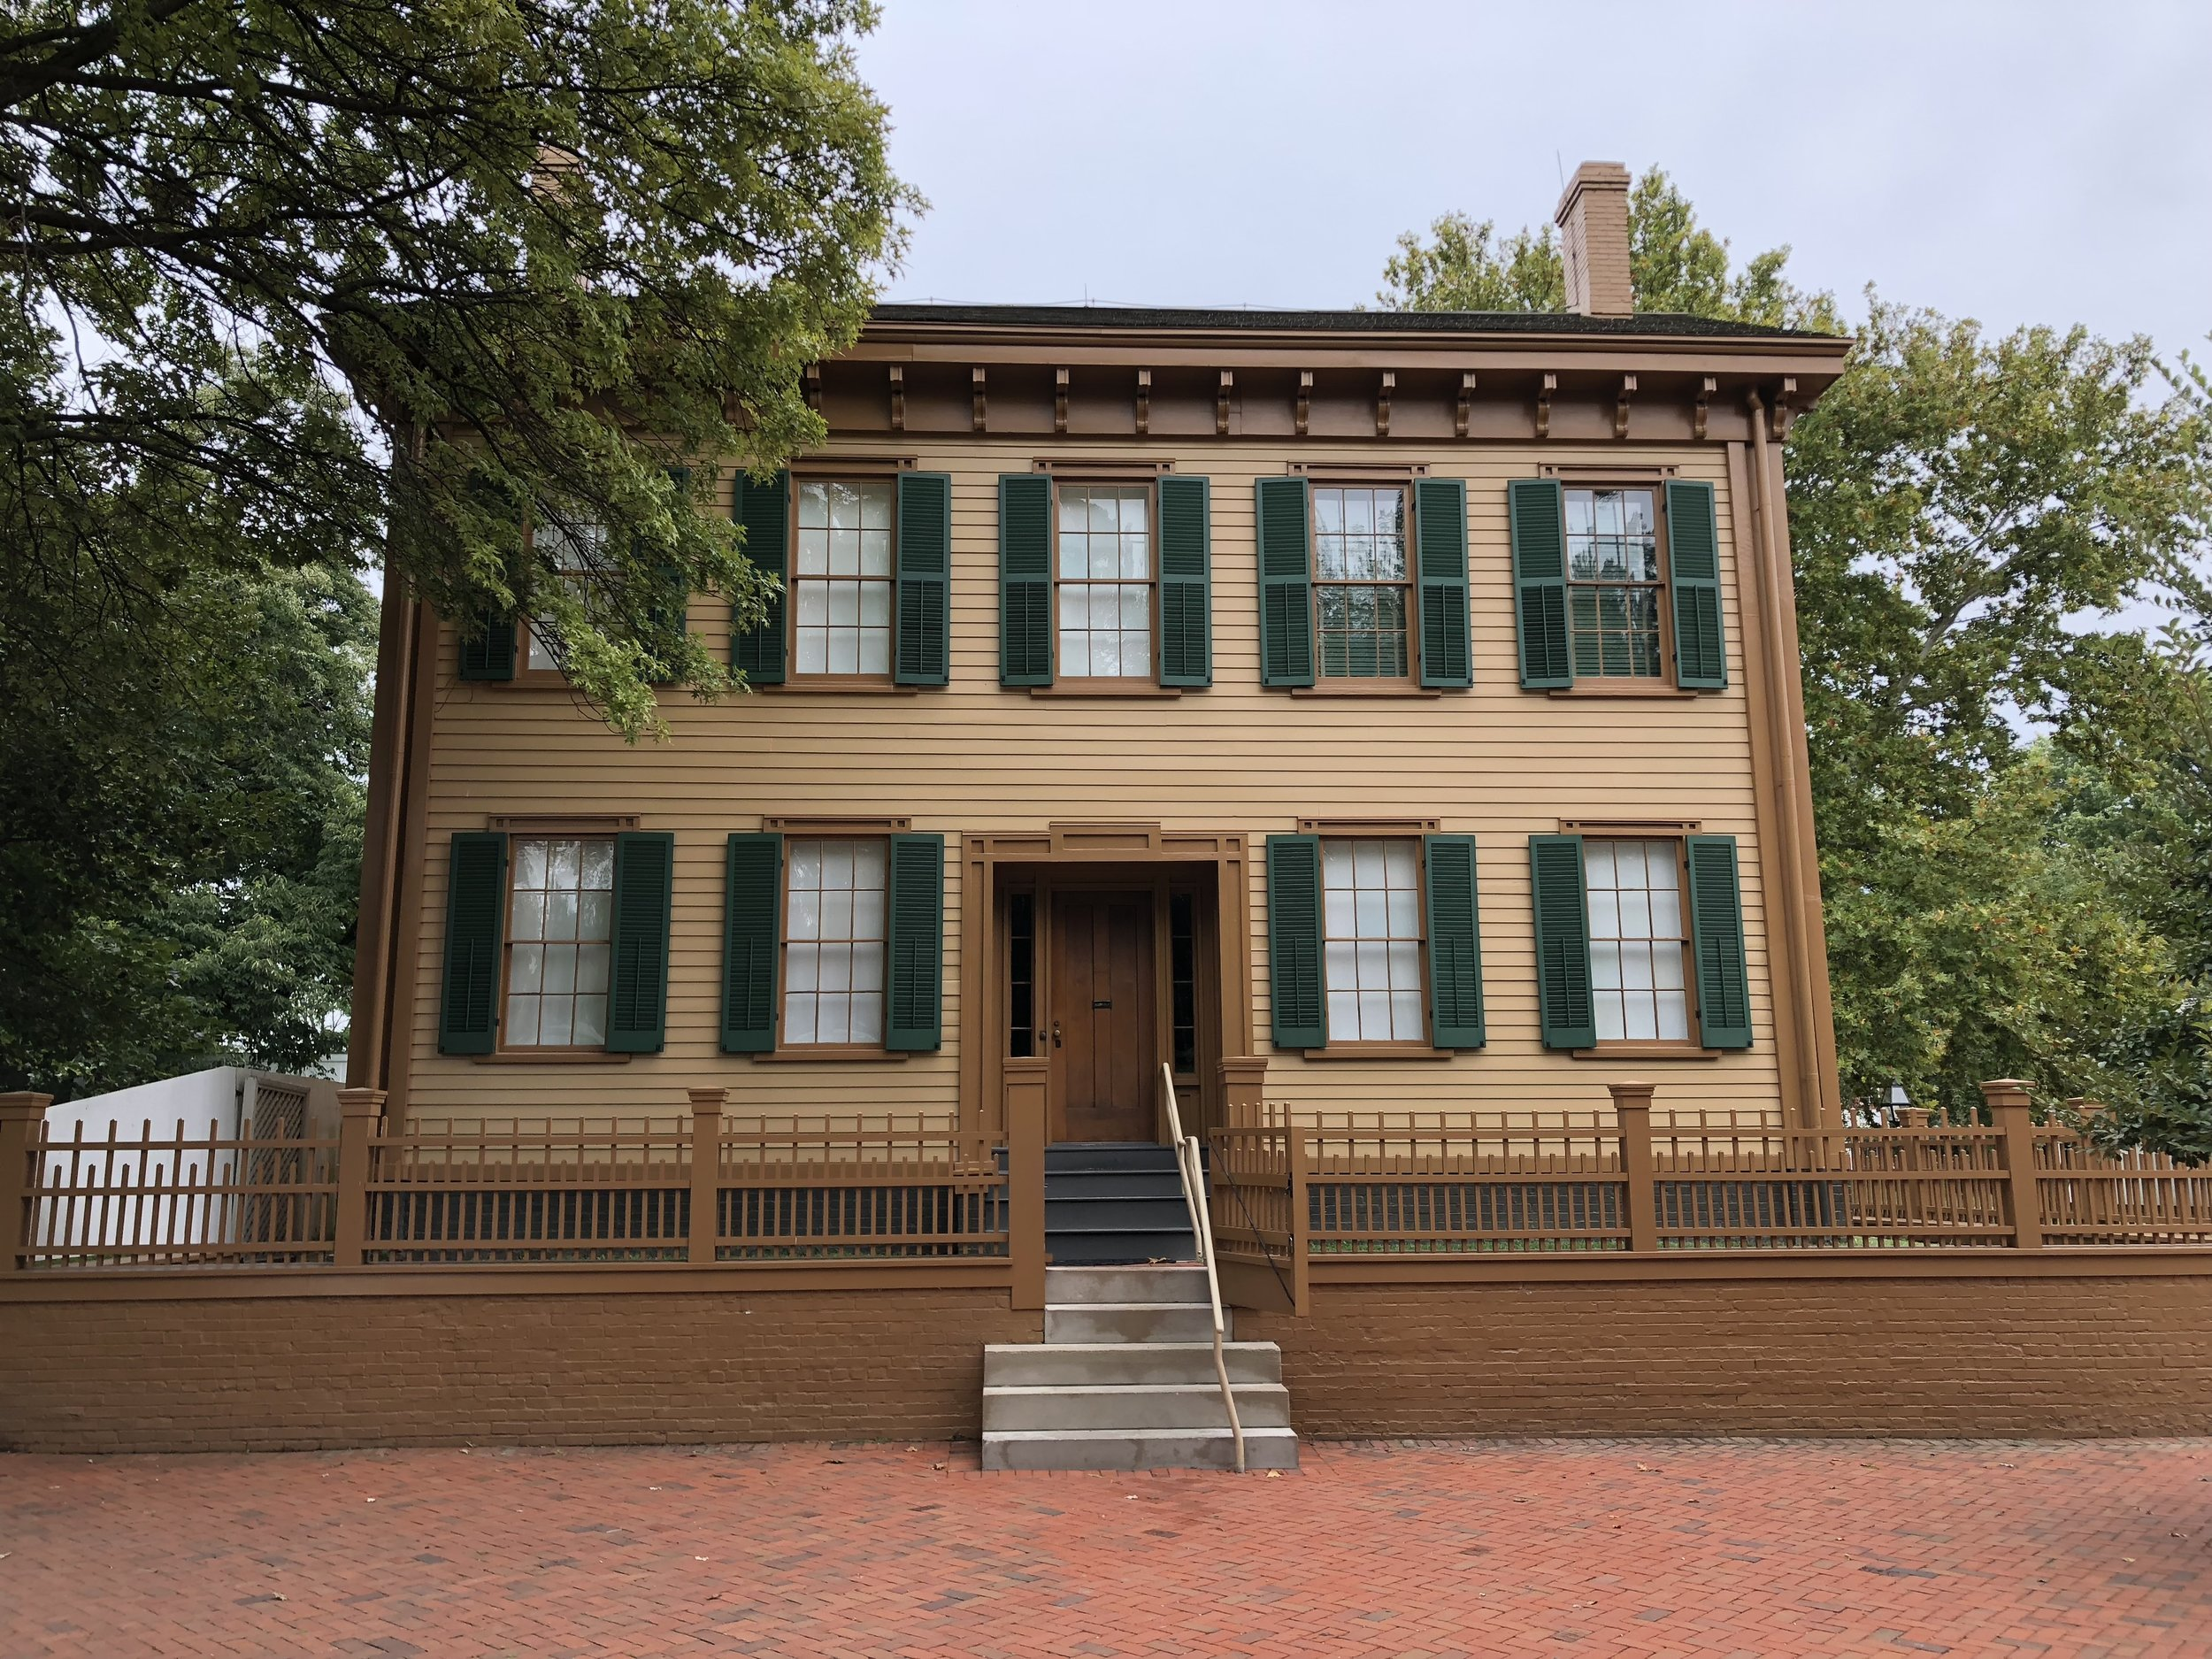 Abraham Lincoln's home in Springfield, Illinois. Born in Kentucky but this is where he came of age as a lawyer and politician. Remarkably well maintained with about 60% of the furnishings being originals that belonged to Lincoln and his family.